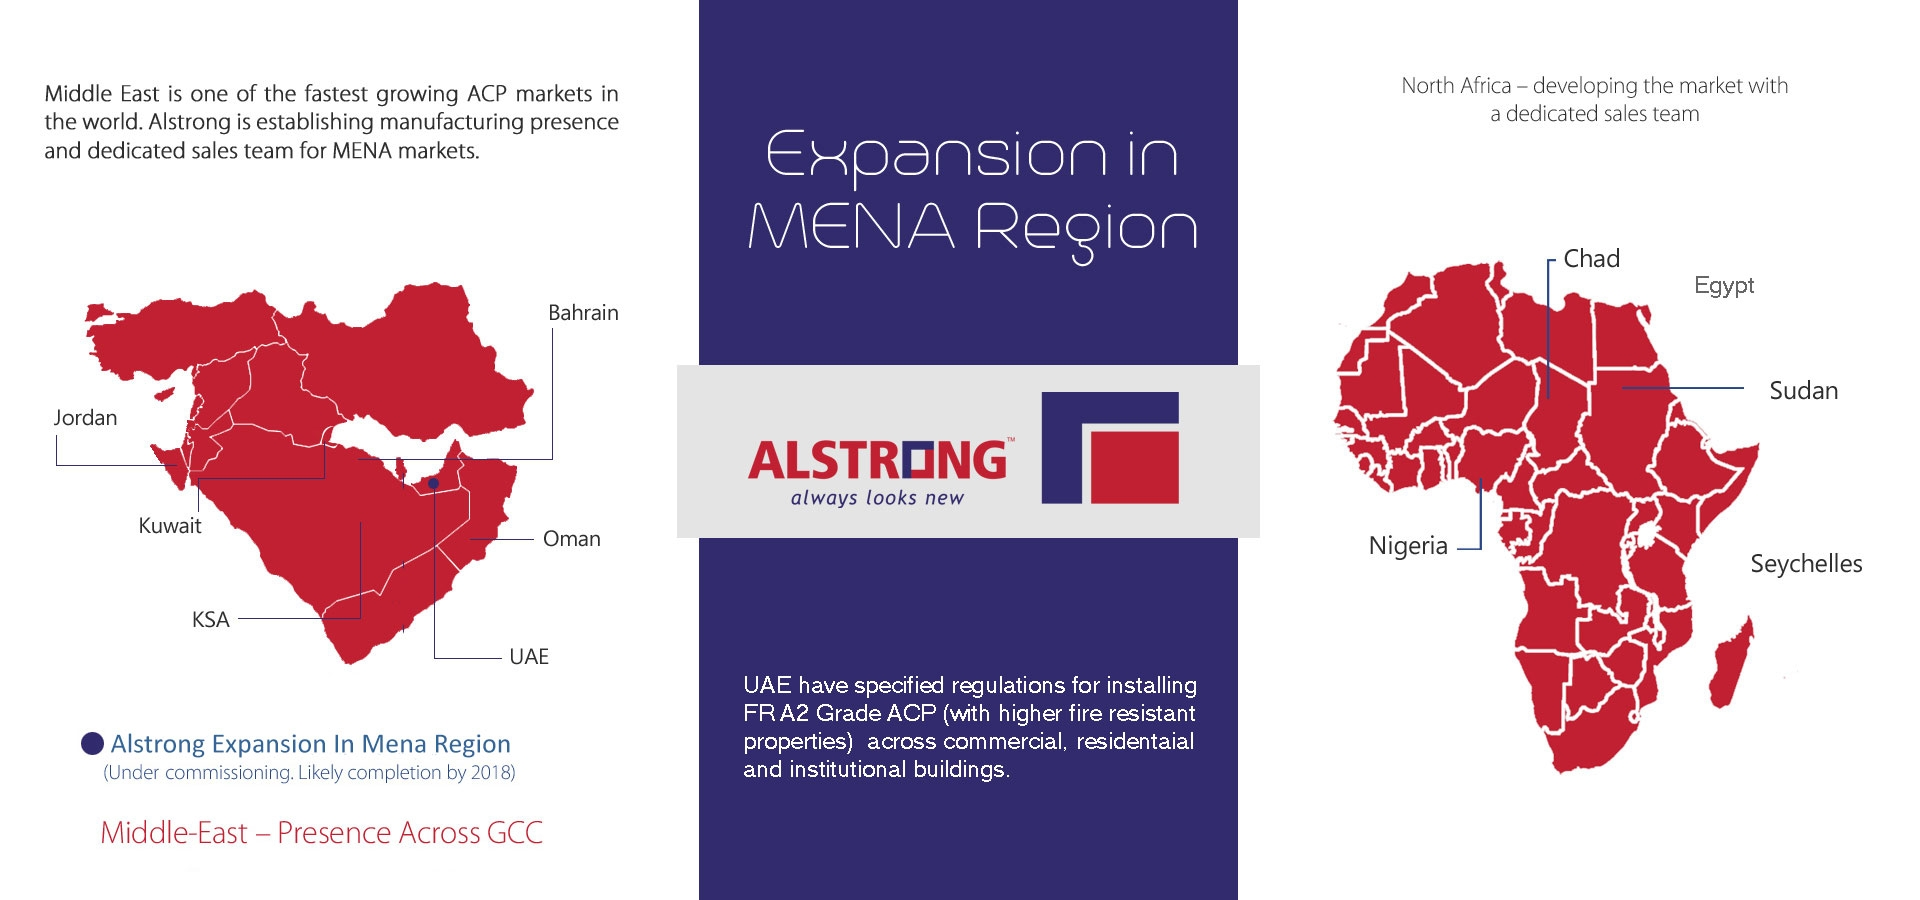 alstrong-expansion-in-mena-region